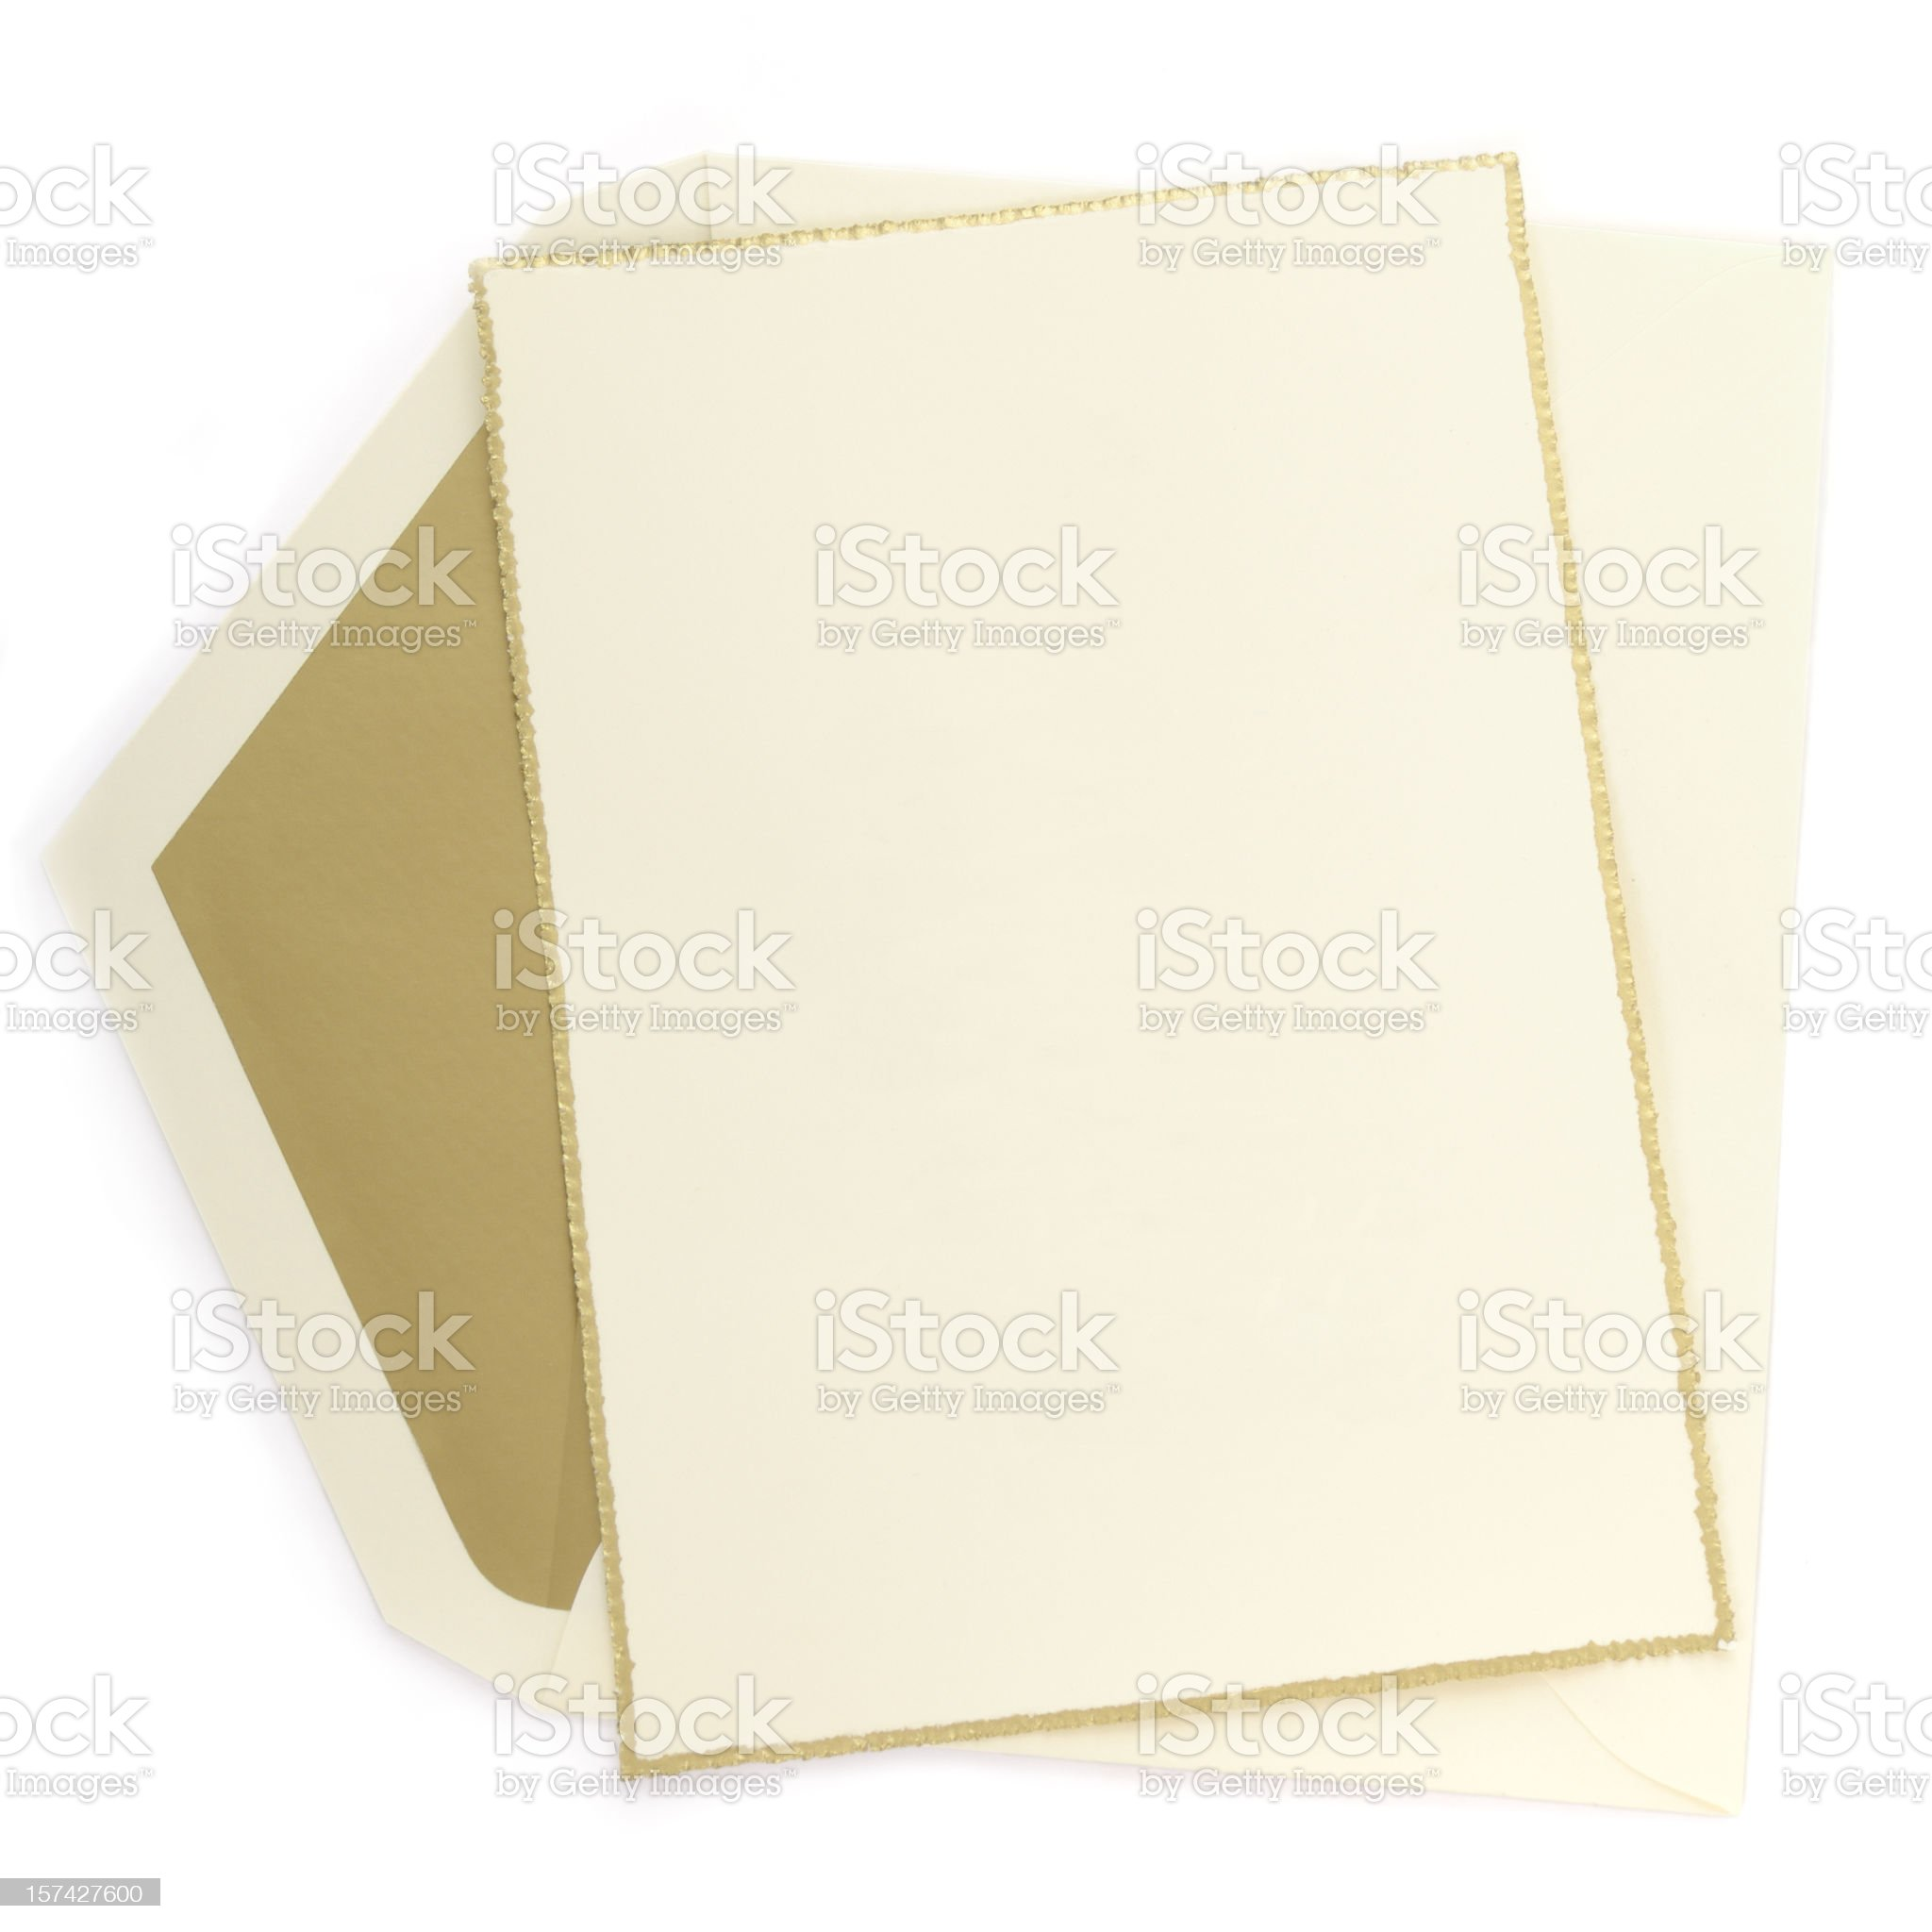 Ivory paper blank card with gold border, matching lined envelope royalty-free stock photo